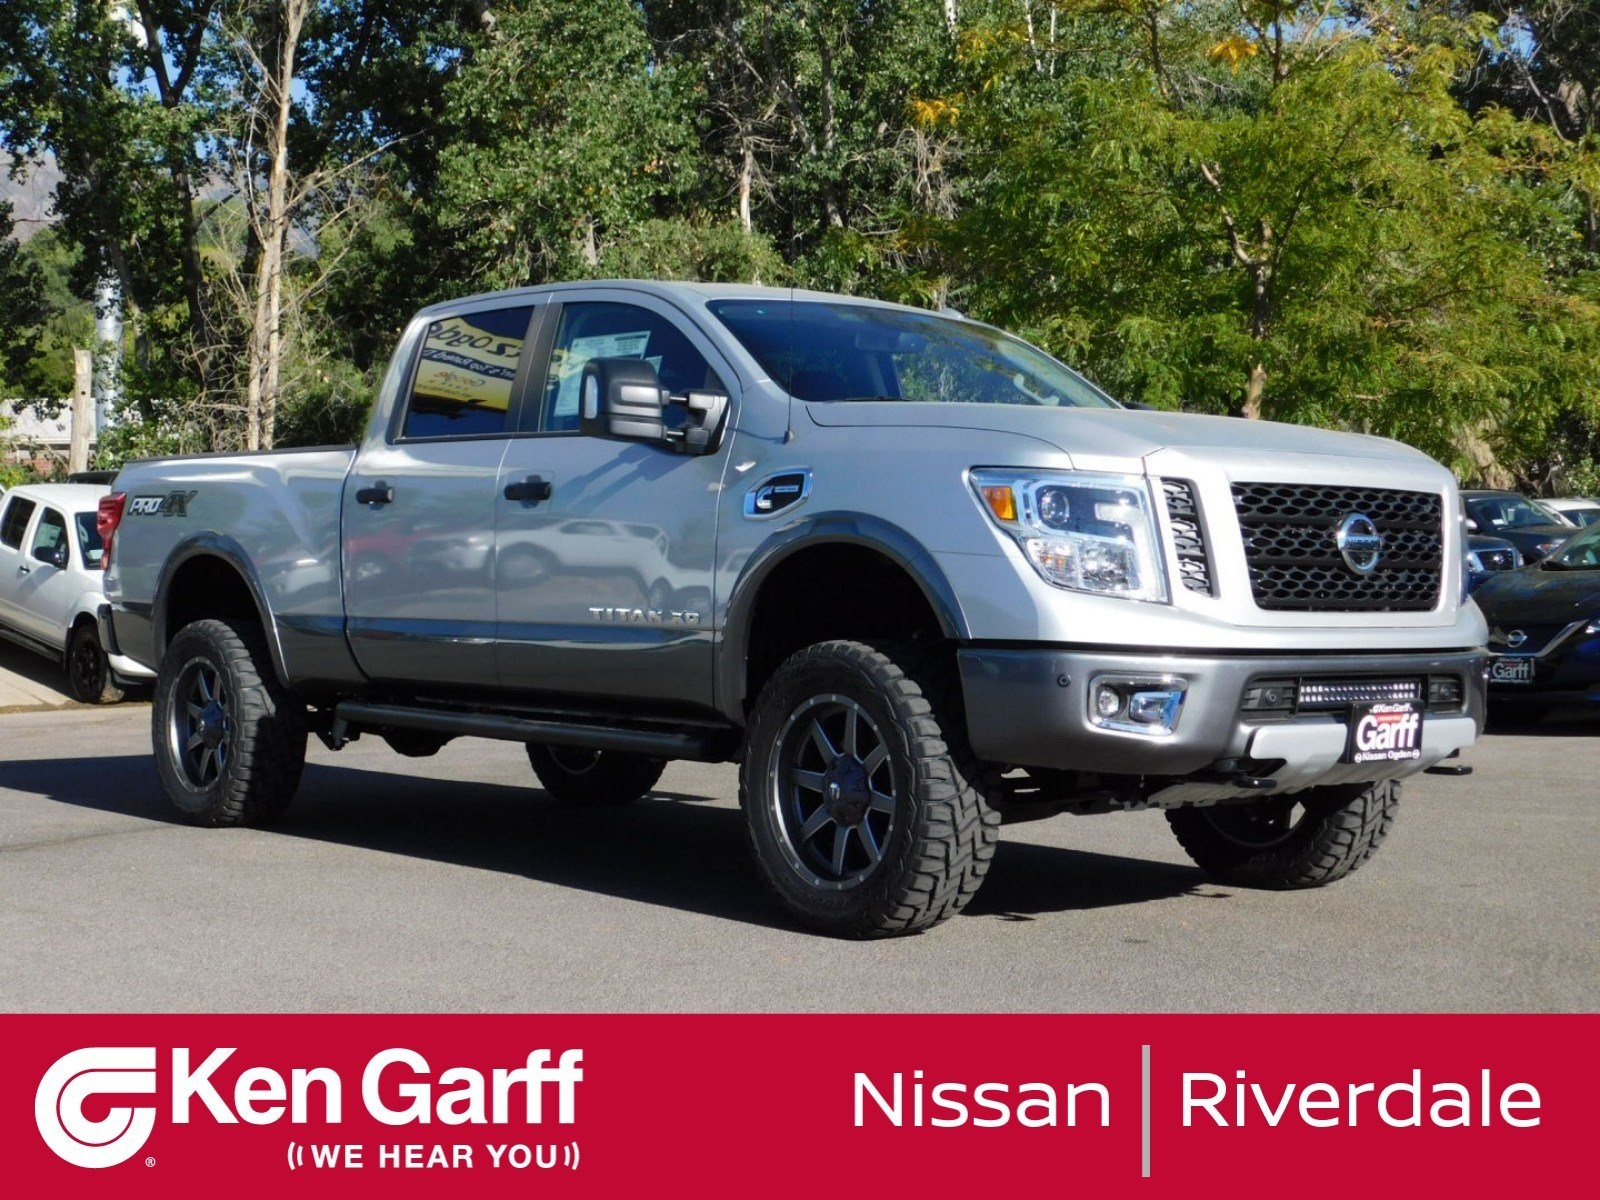 2006 Nissan Titan Parts Diagram New 2018 Nissan Titan Xd Pro 4x Crew Cab Pickup In Riverdale Of 2006 Nissan Titan Parts Diagram New 2018 Nissan Titan Pro 4x Crew Cab Pickup In Salt Lake City